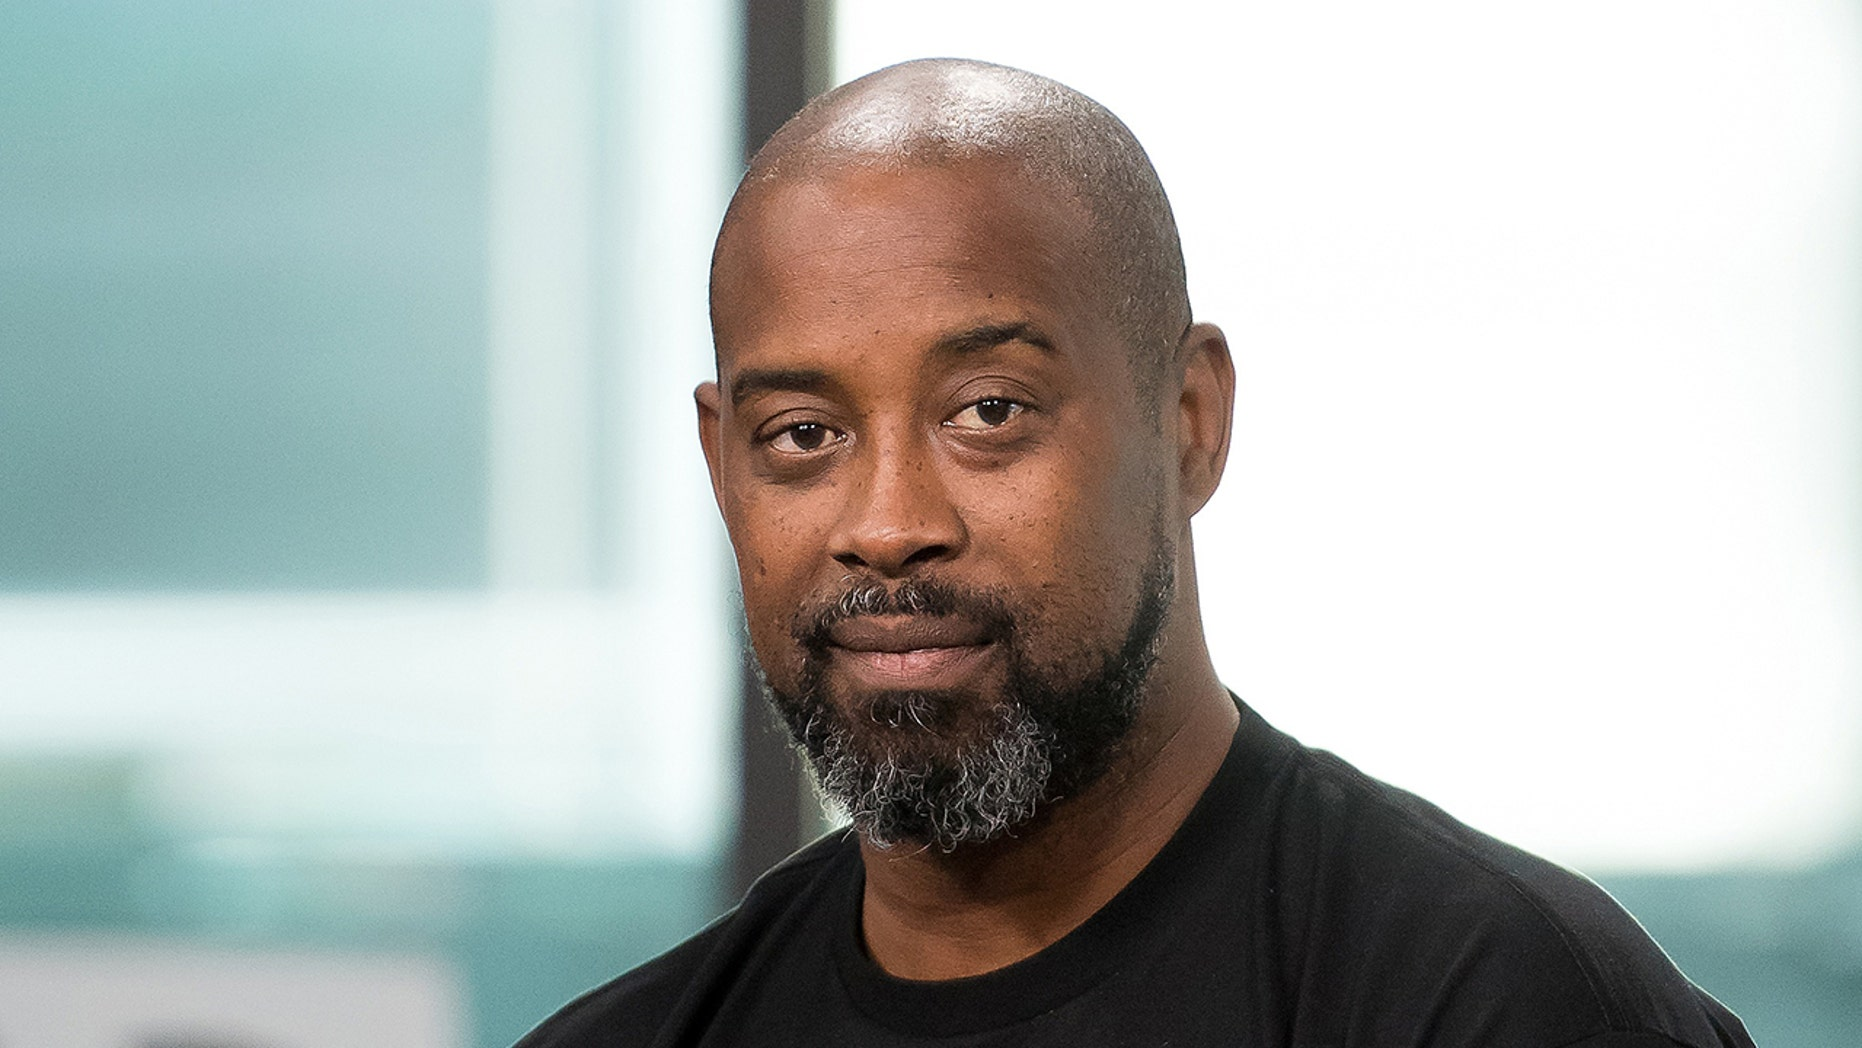 NEW YORK, NY - MAY 04: Kenny Anderson visits Build Studios to discuss